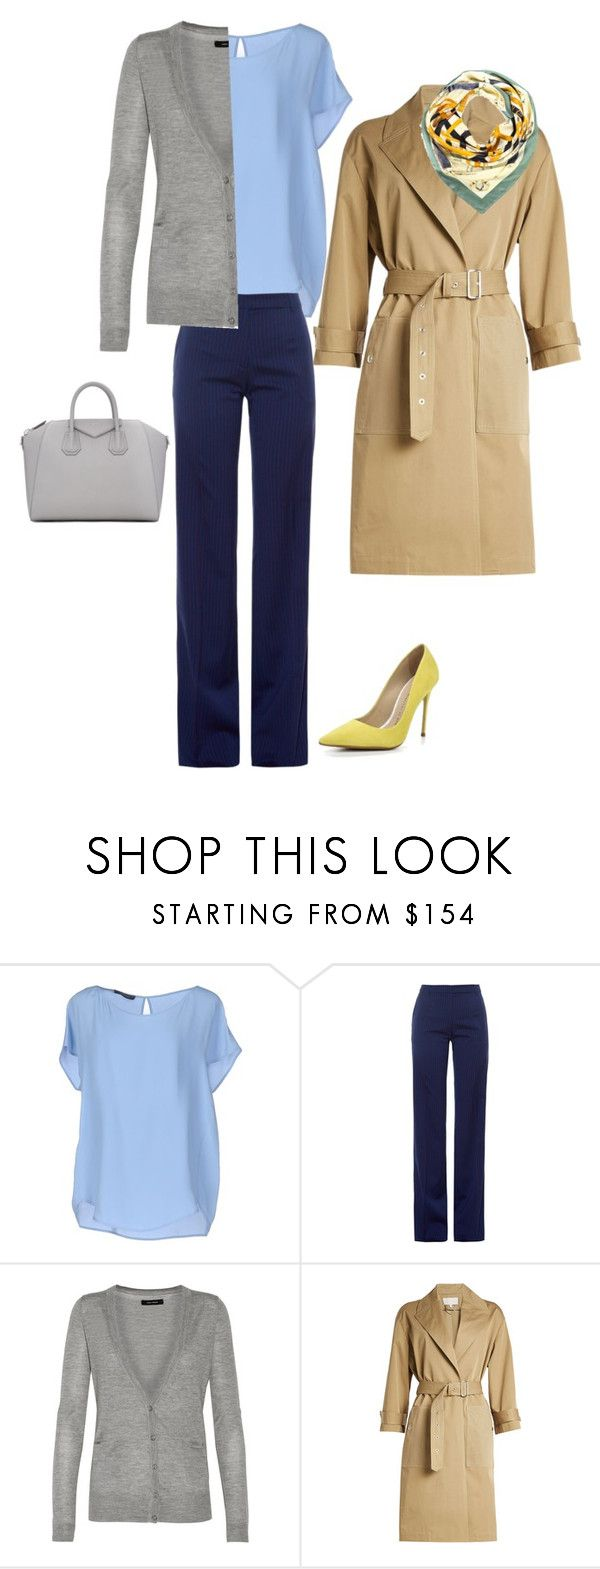 5 by asvetik on Polyvore featuring мода, Isabel Marant, Les Copains, Vanessa Bruno, Altuzarra and Givenchy